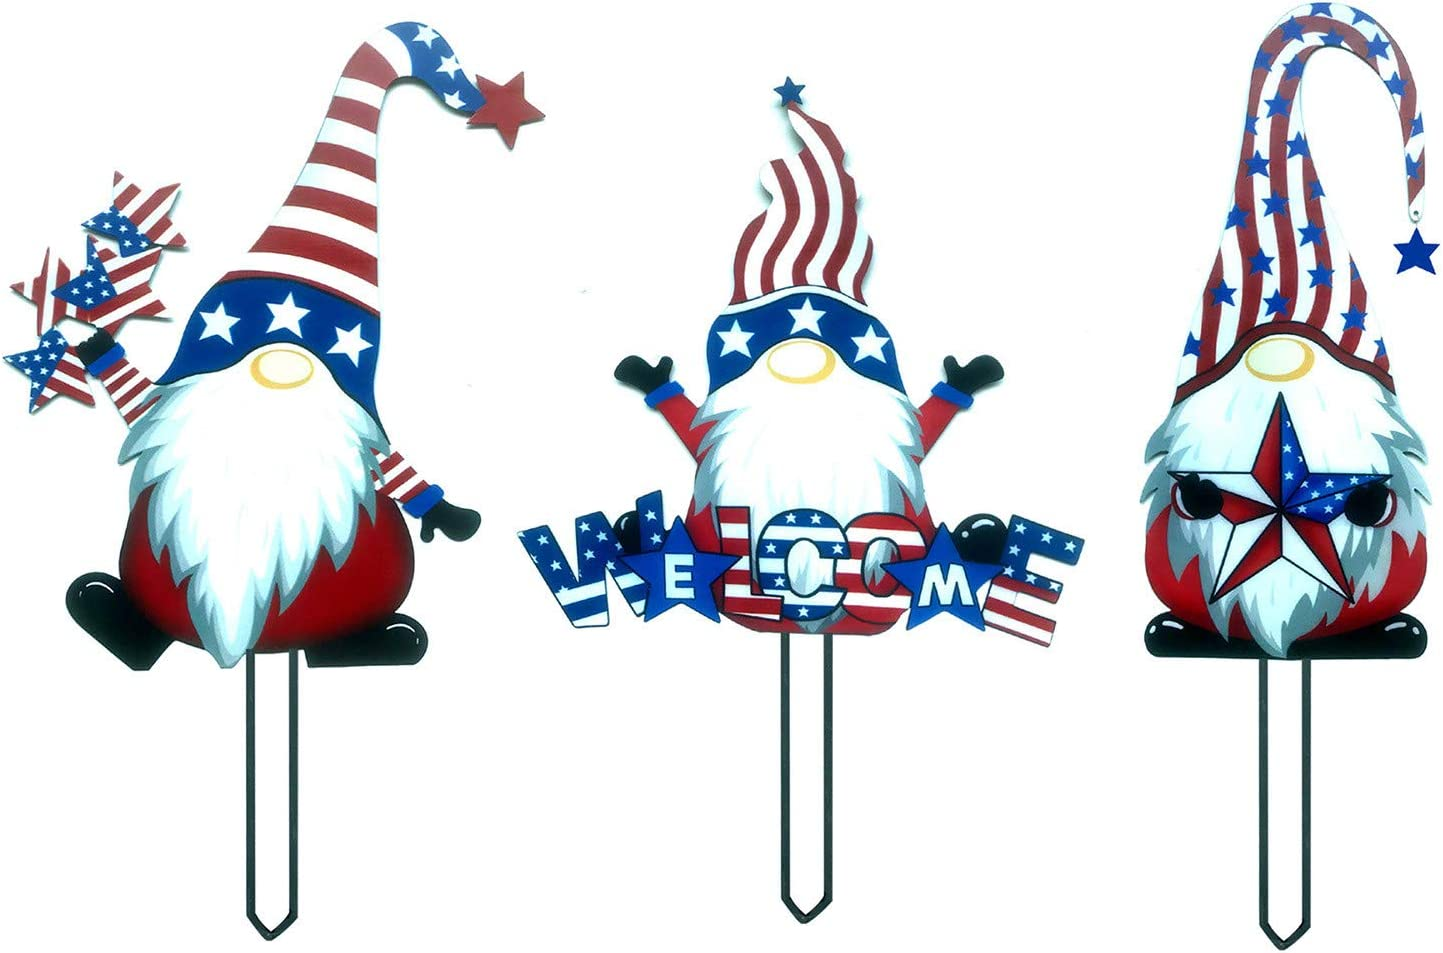 Steel Branch Gnomes Decoration, Faceless Doll Decoration Steel Garden Gnomes Independence Day Decor ,Patriotic 4th of July Garden Pile Courtyard Art Decoration Branch Ornaments for Home Yard Outdoor